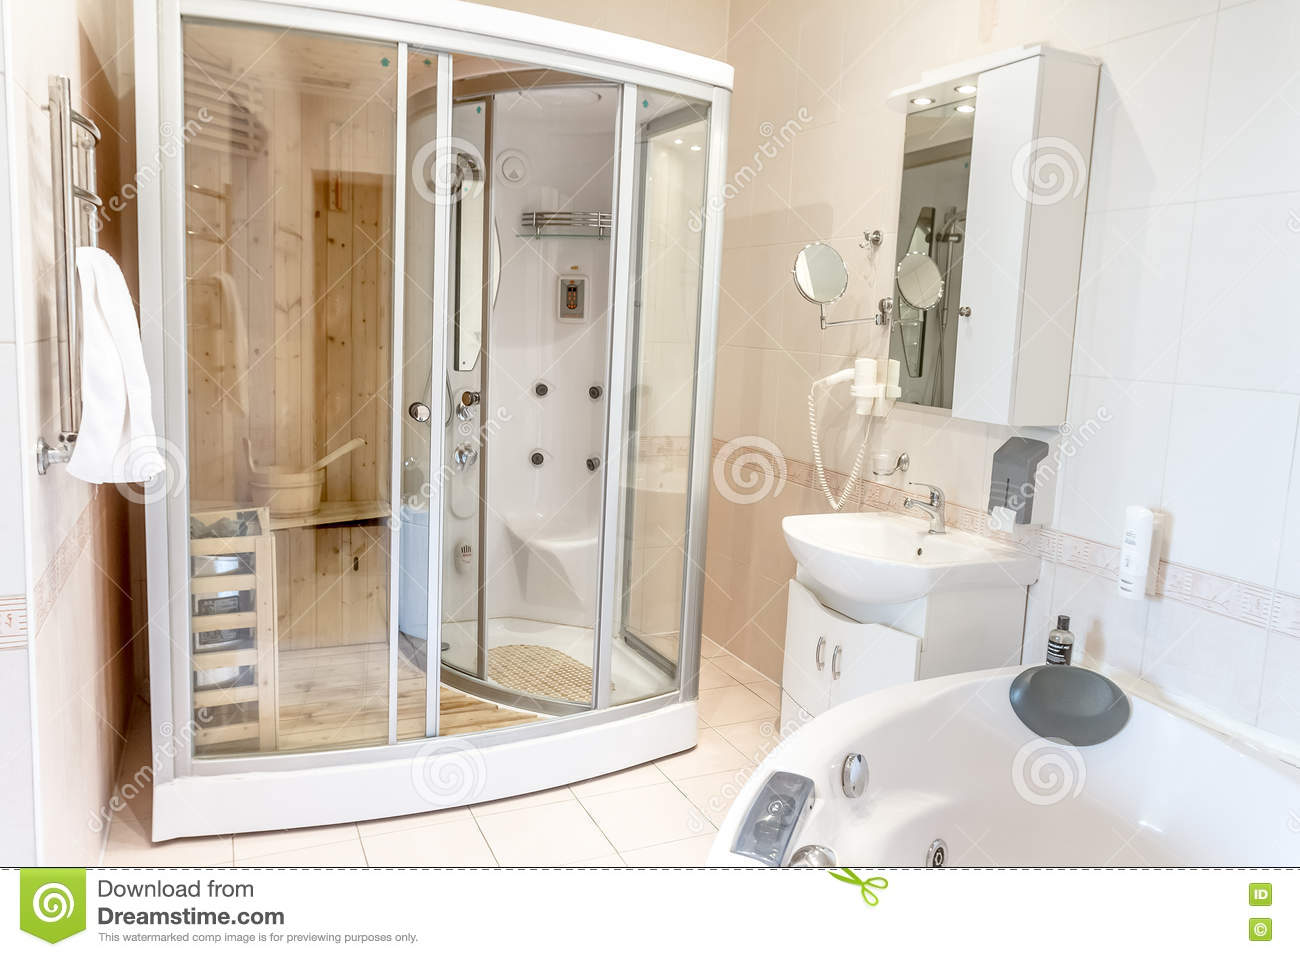 Spa Sauna Cabin In Bathroom, House Or Hotel Stock Photo - Image of ...